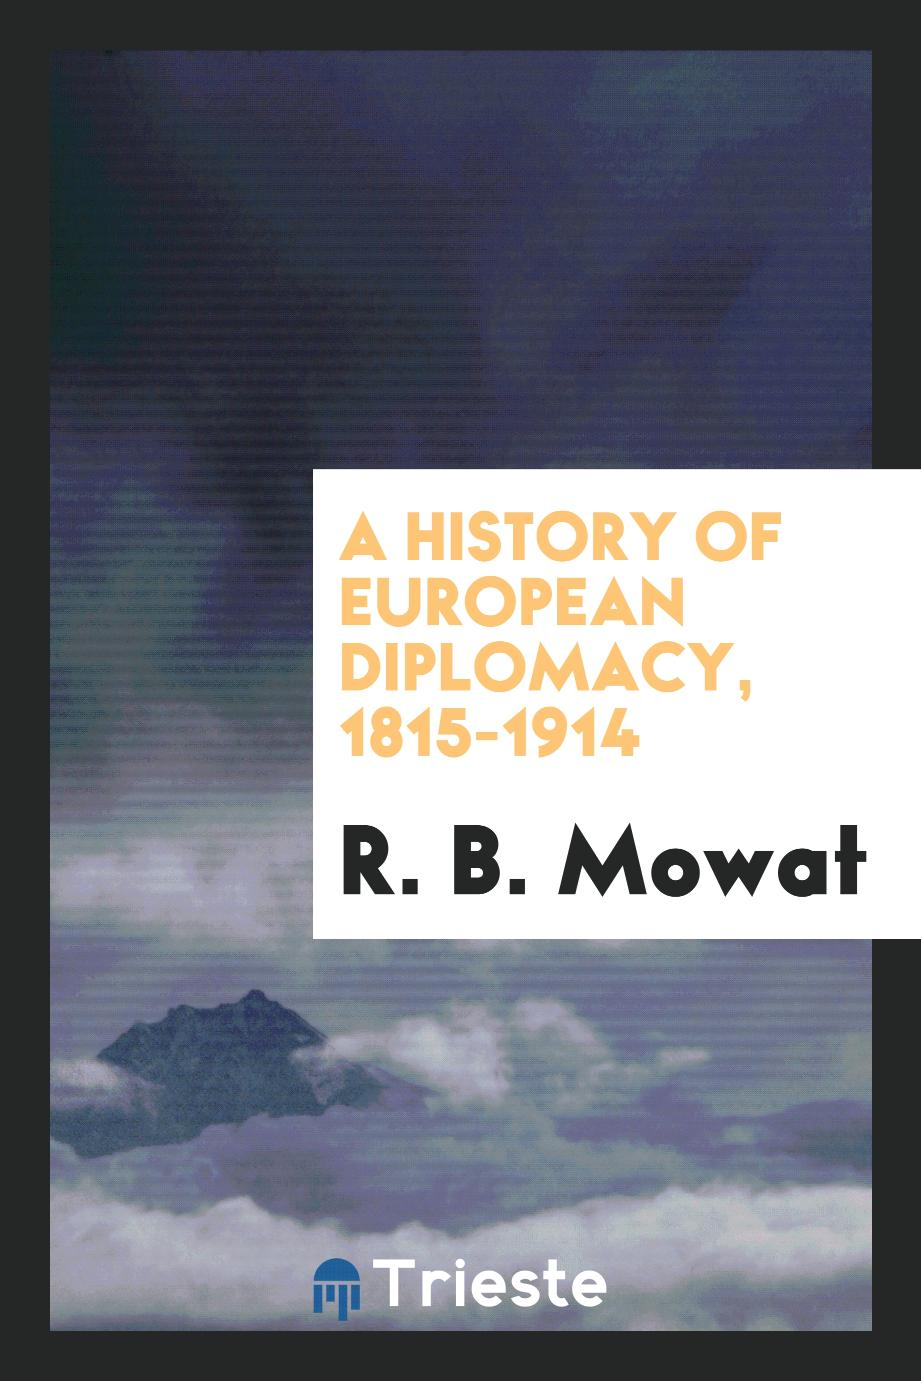 A History of European Diplomacy, 1815-1914